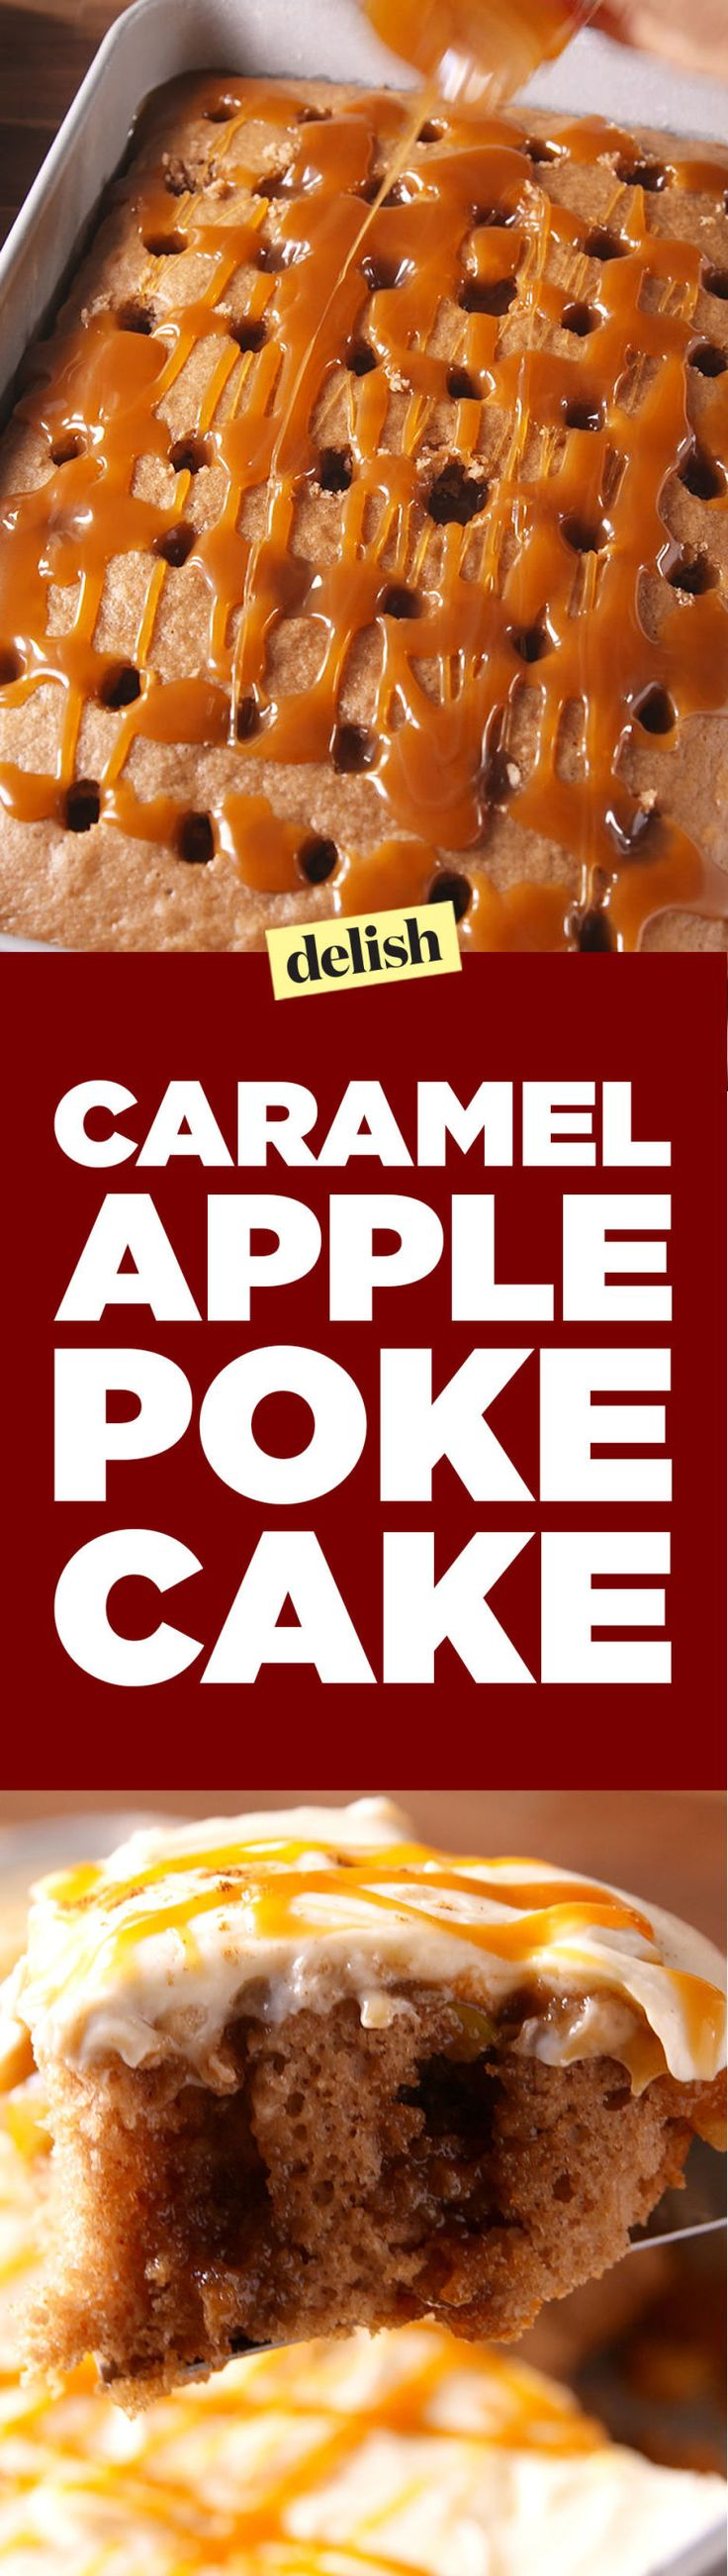 Caramel Apple Poke Cake Combines All Your Favorite Fall Flavors In One